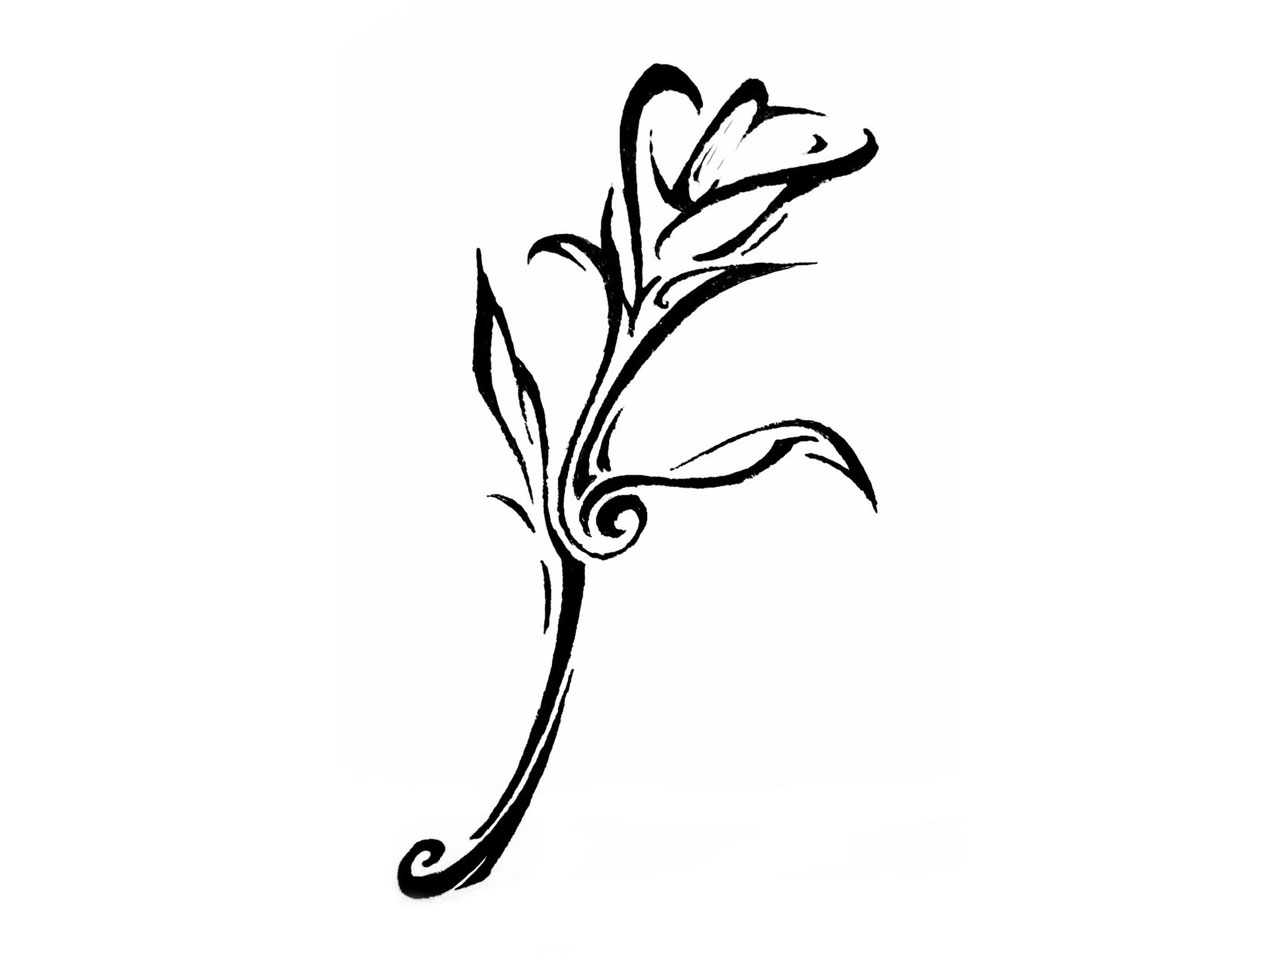 Calla Lily Drawing - ClipArt Best